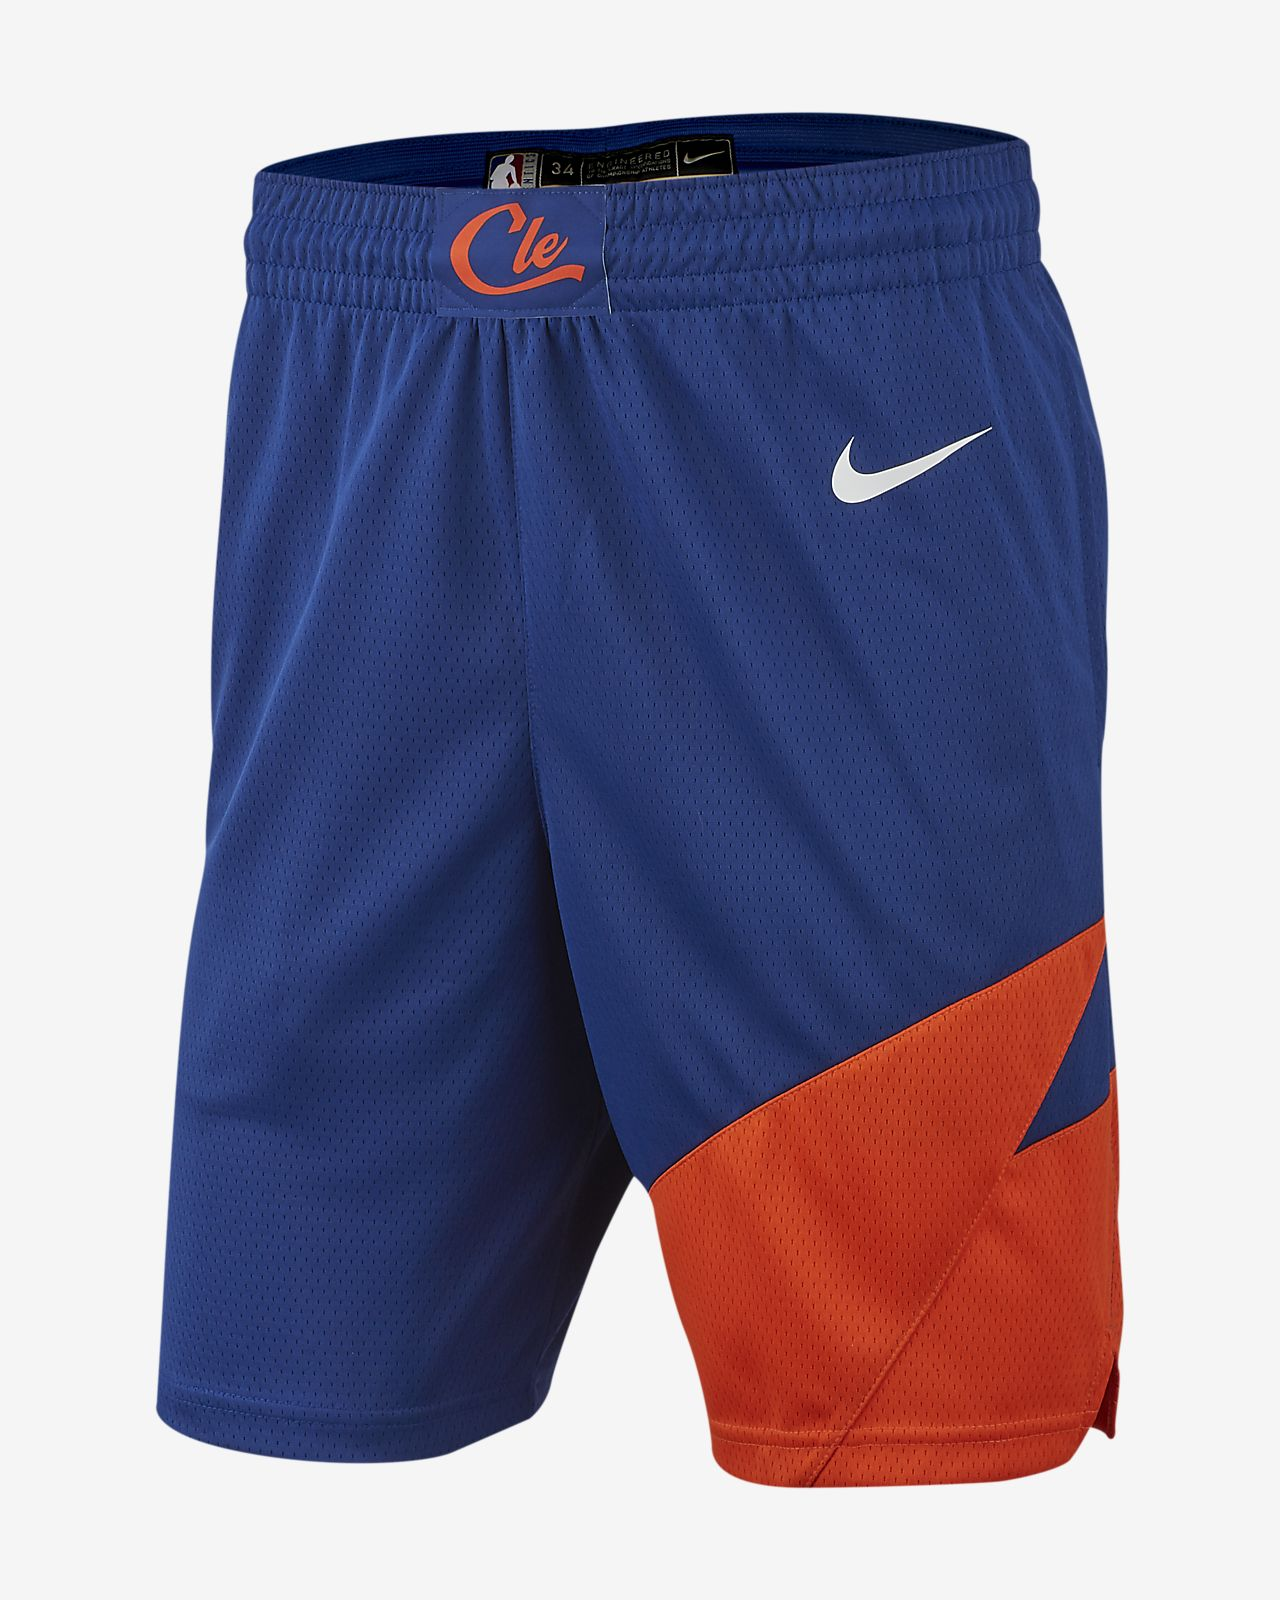 Cleveland Cavaliers City Edition Swingman Men's Nike NBA Shorts